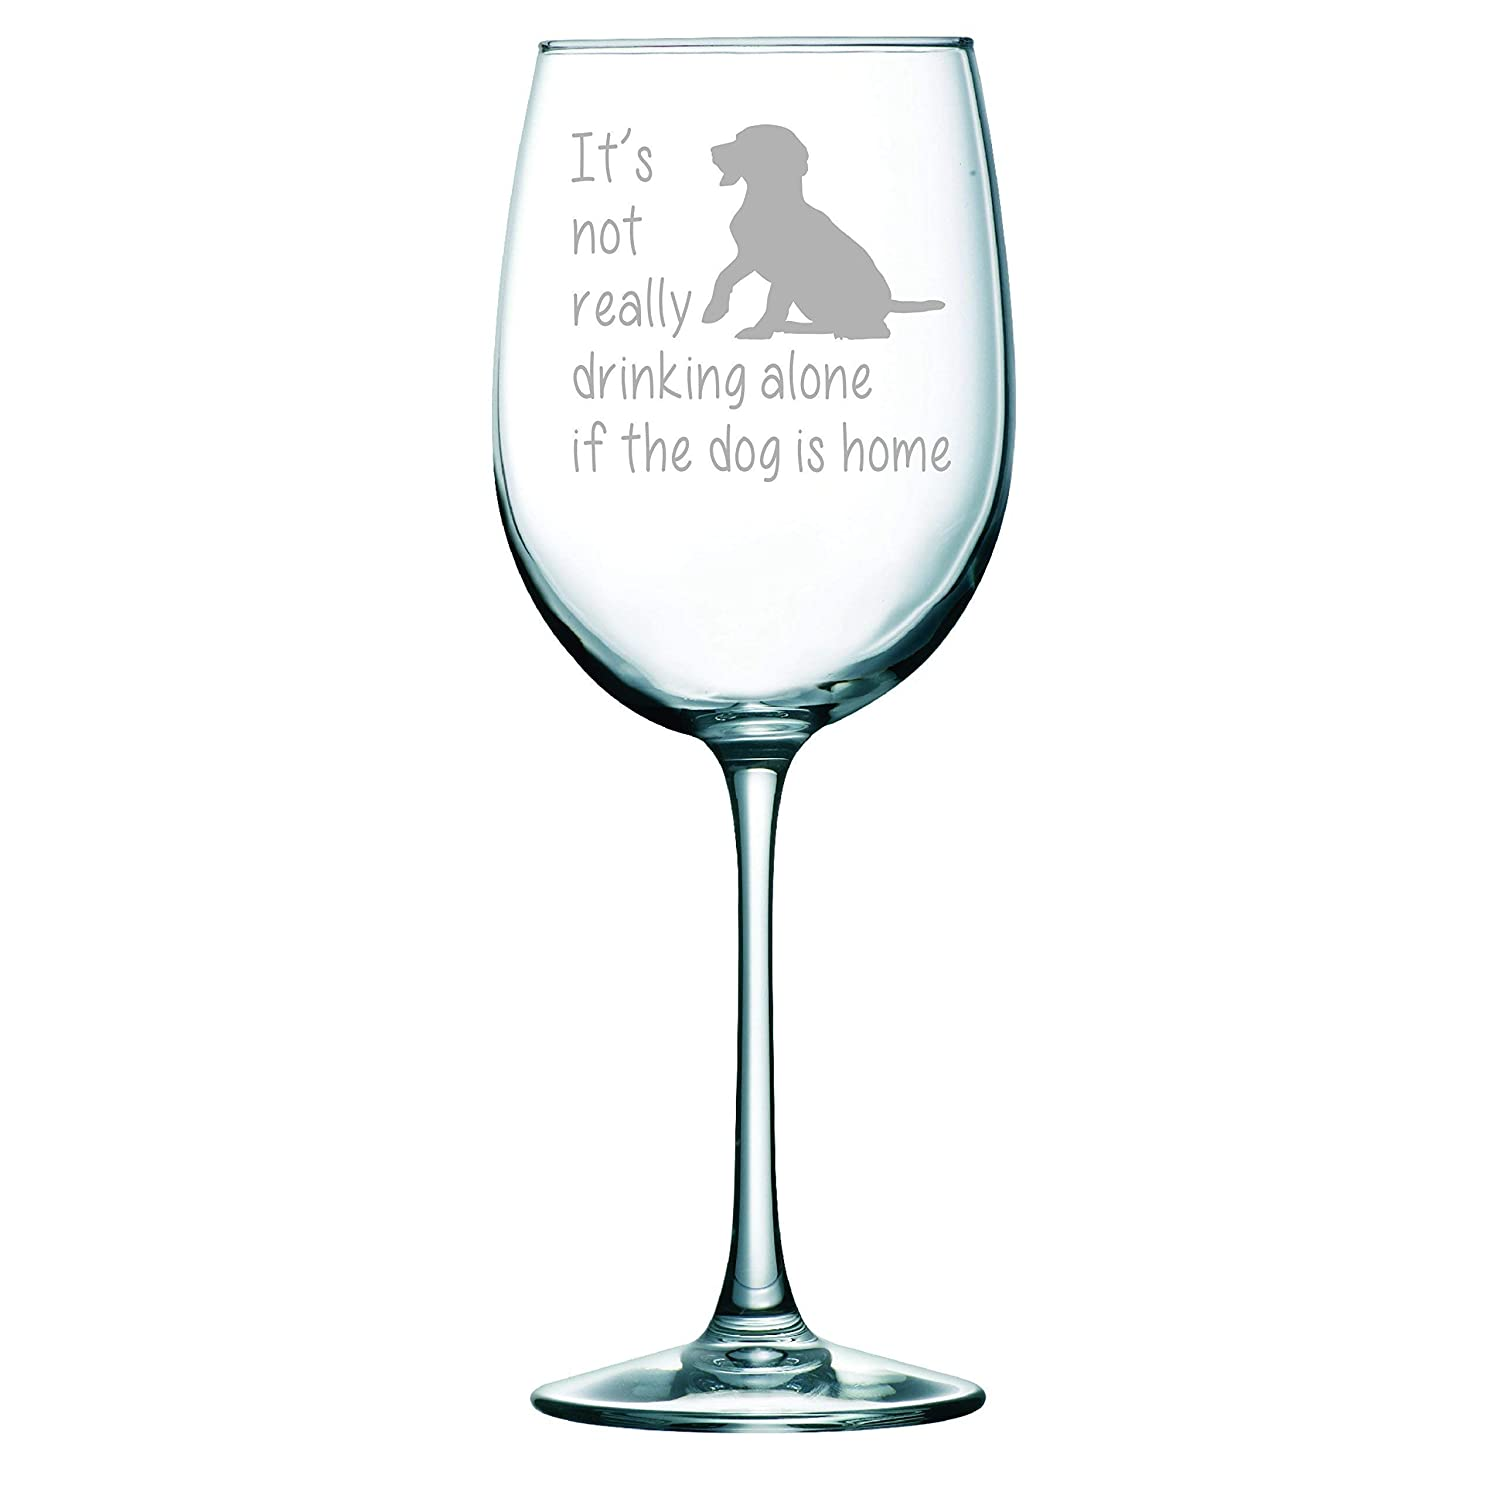 C M It's Long-awaited not really drinking alone glas if Sale price the home dog wine is